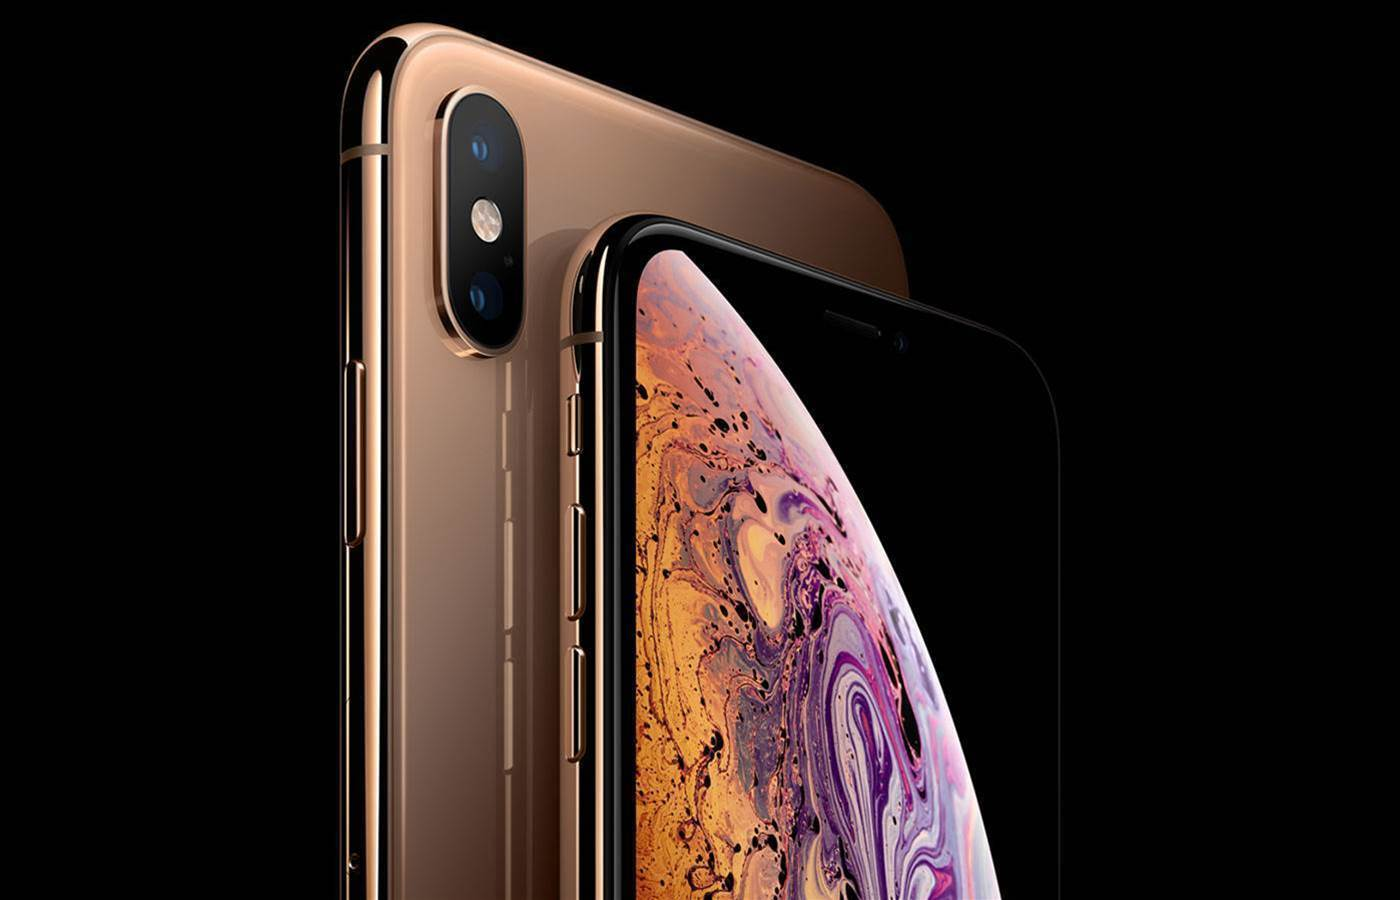 Buyers may skip iPhone XS for cheaper iPhone XR